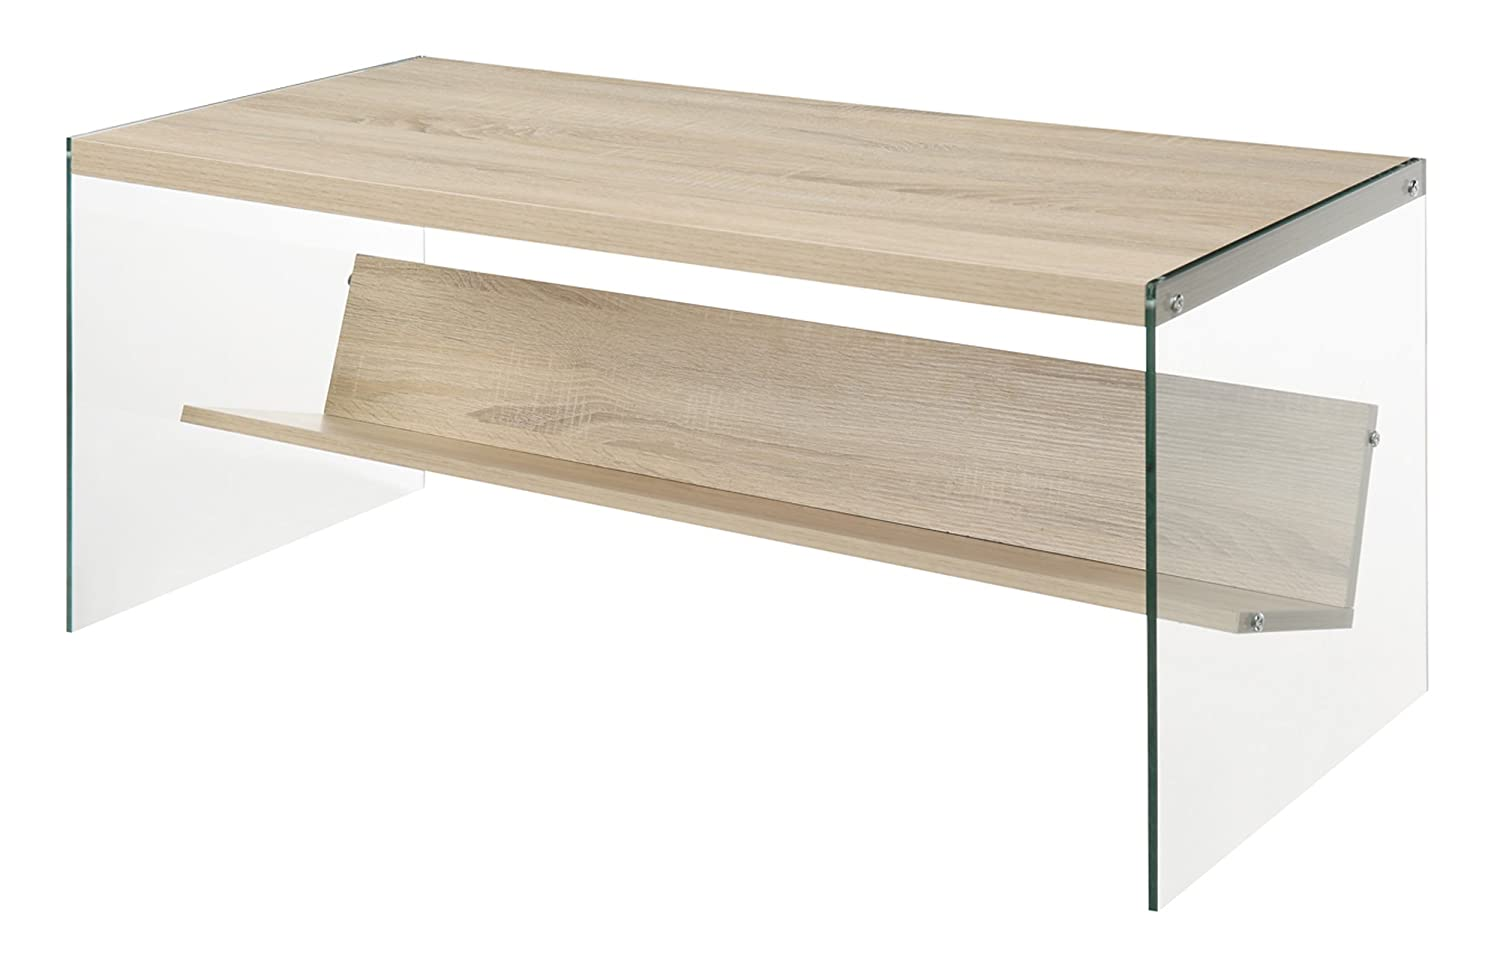 Convenience Concepts Soho Coffee Table, Weathered White